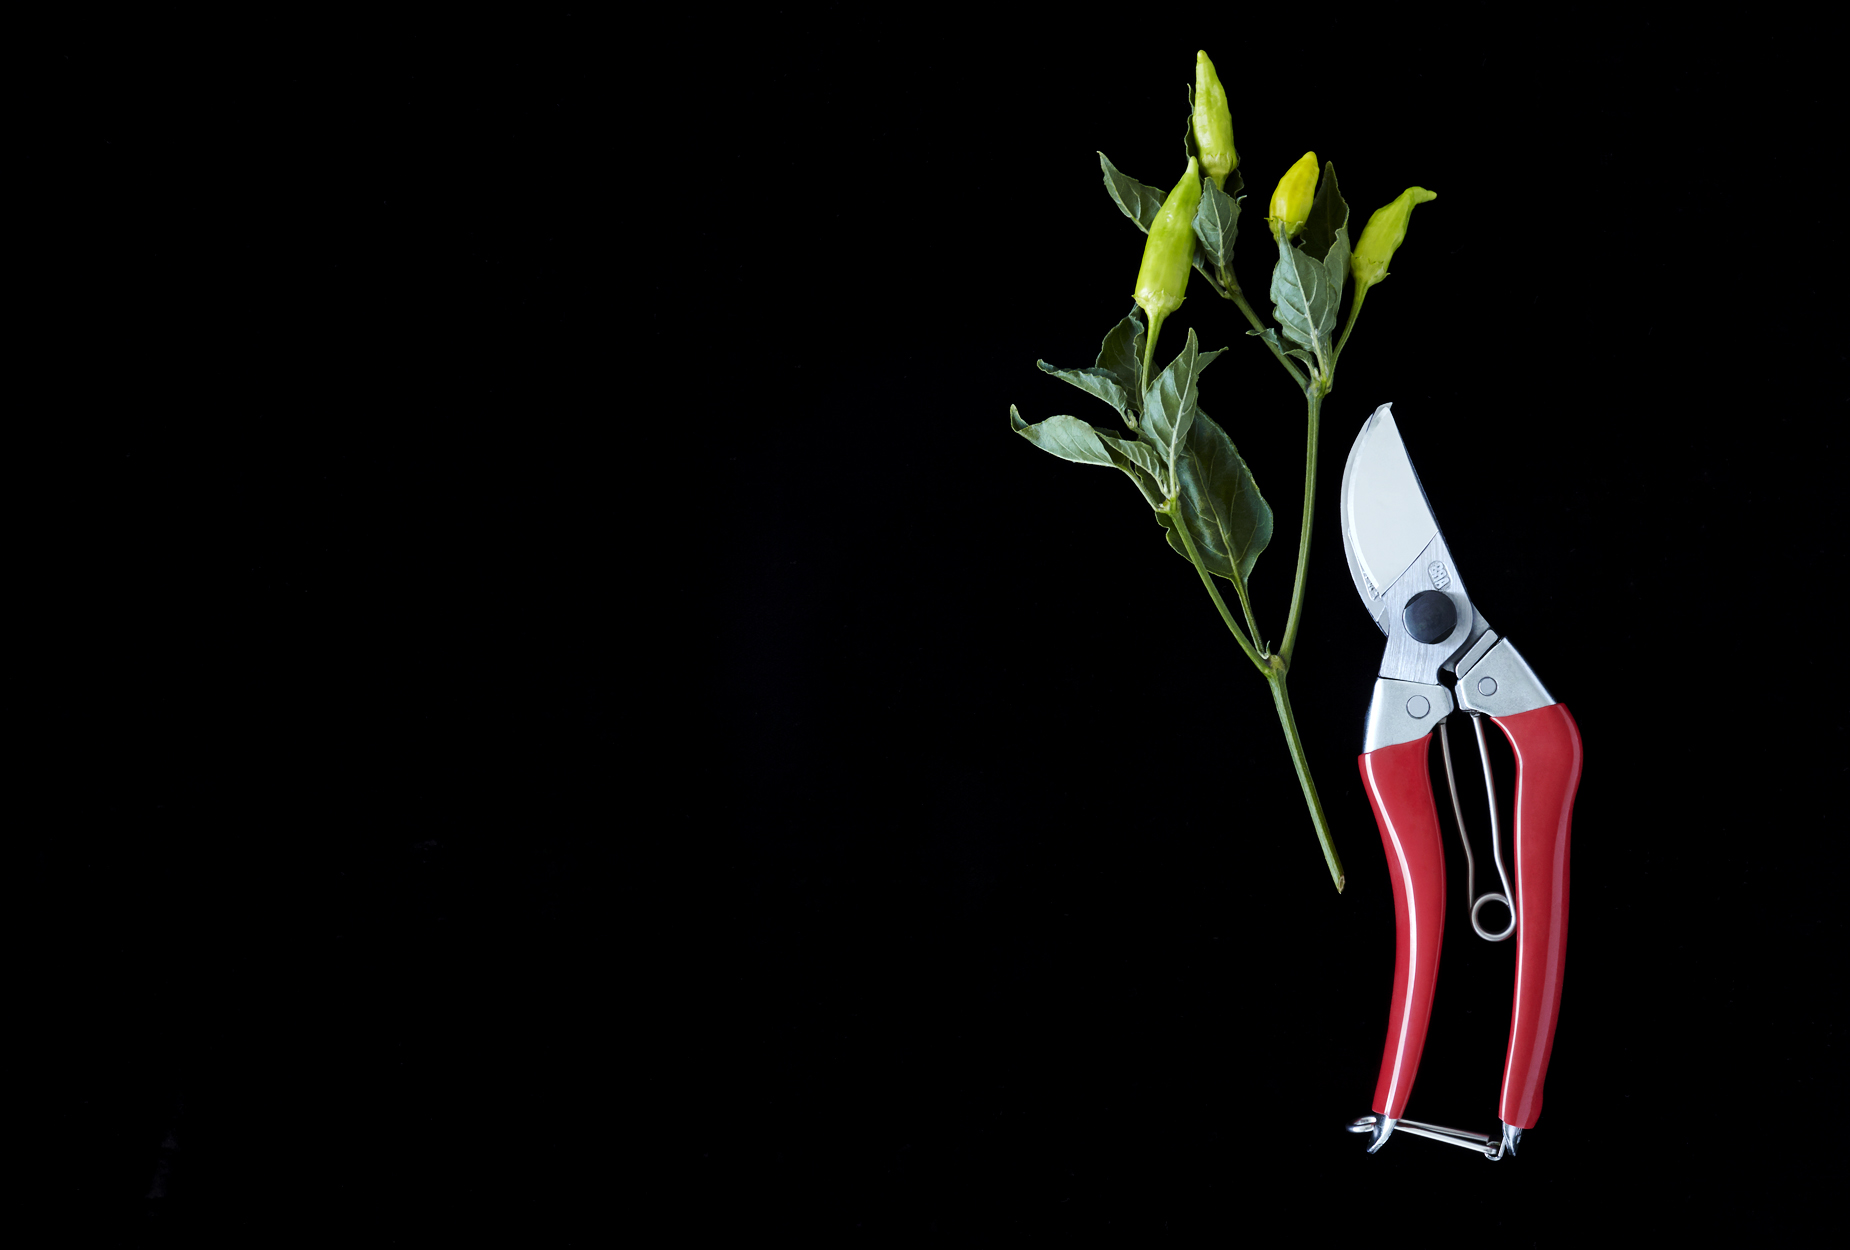 Clipper and Peppers | Product Still Life Photographer, Marshall Gordon